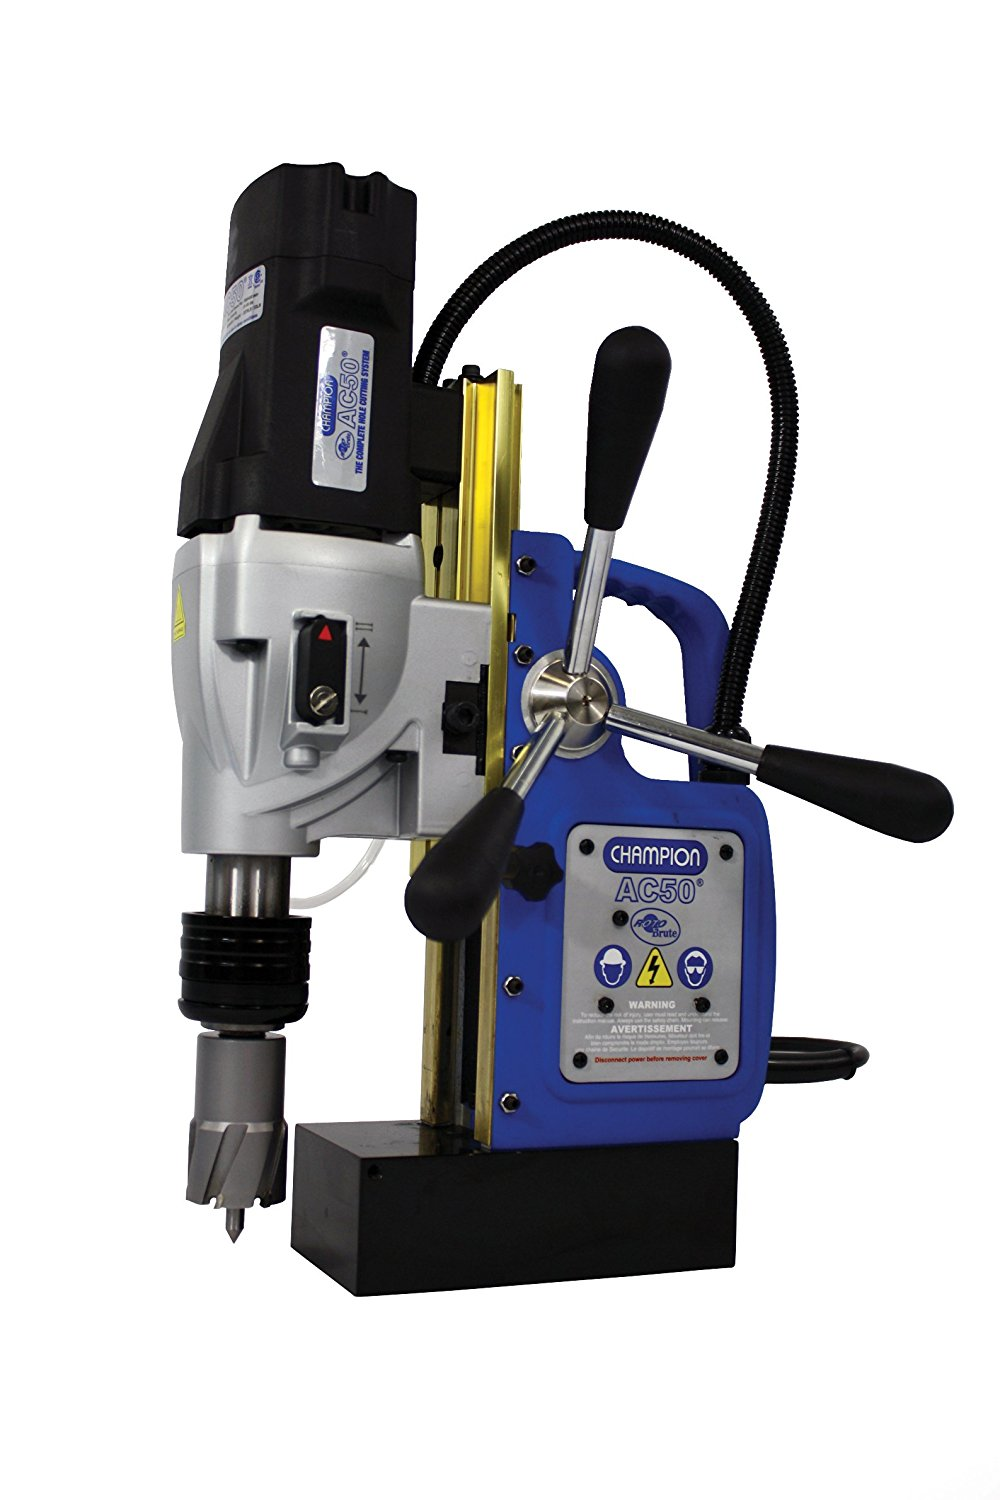 Champion Cutting Tool RotoBrute MightiBrute AC50 Portable Magnetic Drill Press: Up to 2-1/8